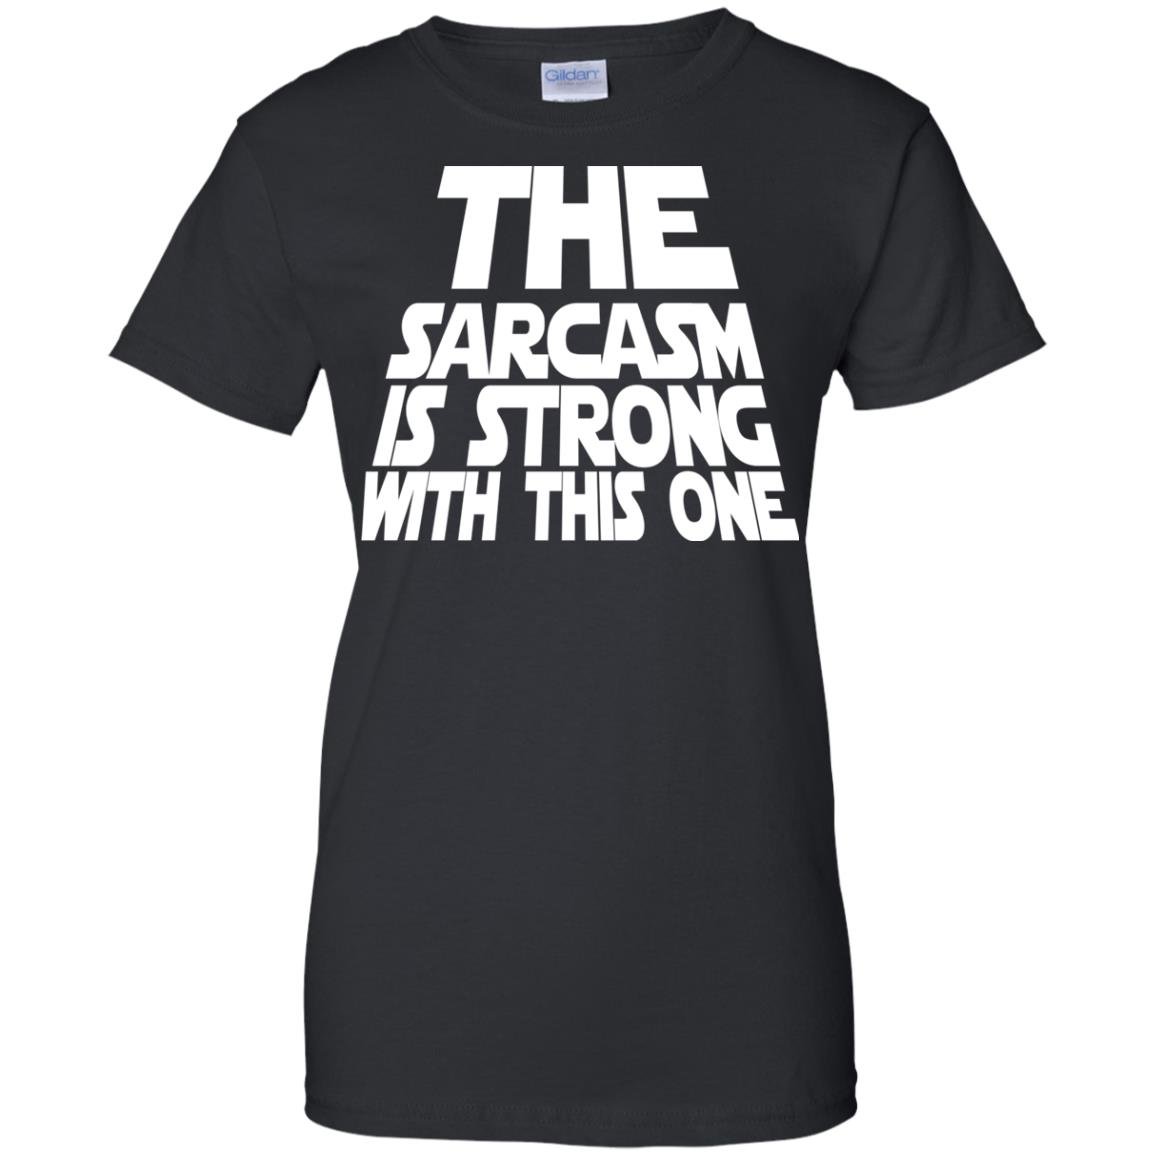 image 1802 - The Sarcasm is strong with this one shirt